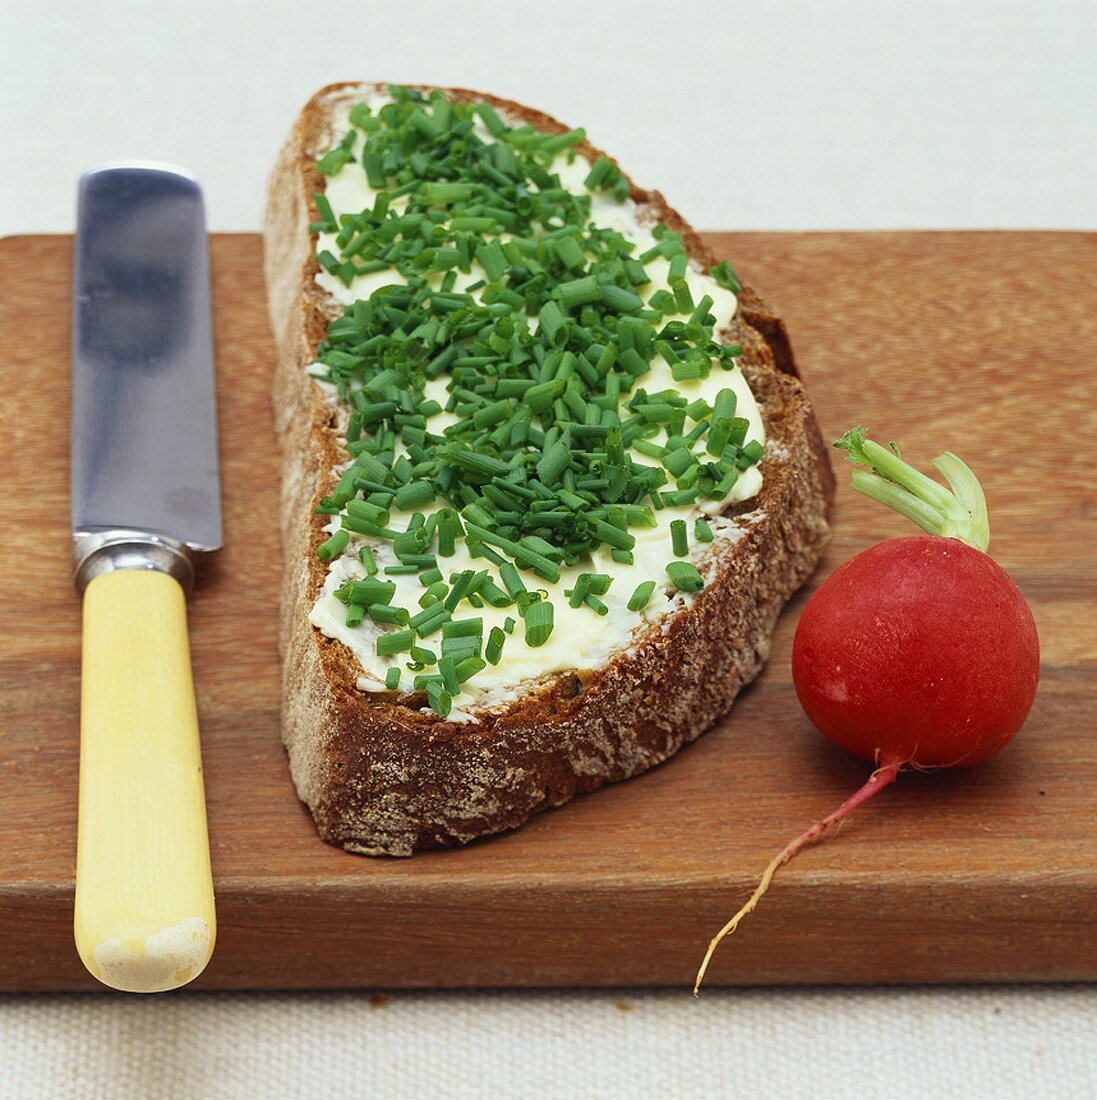 A slice of bread and butter with chives